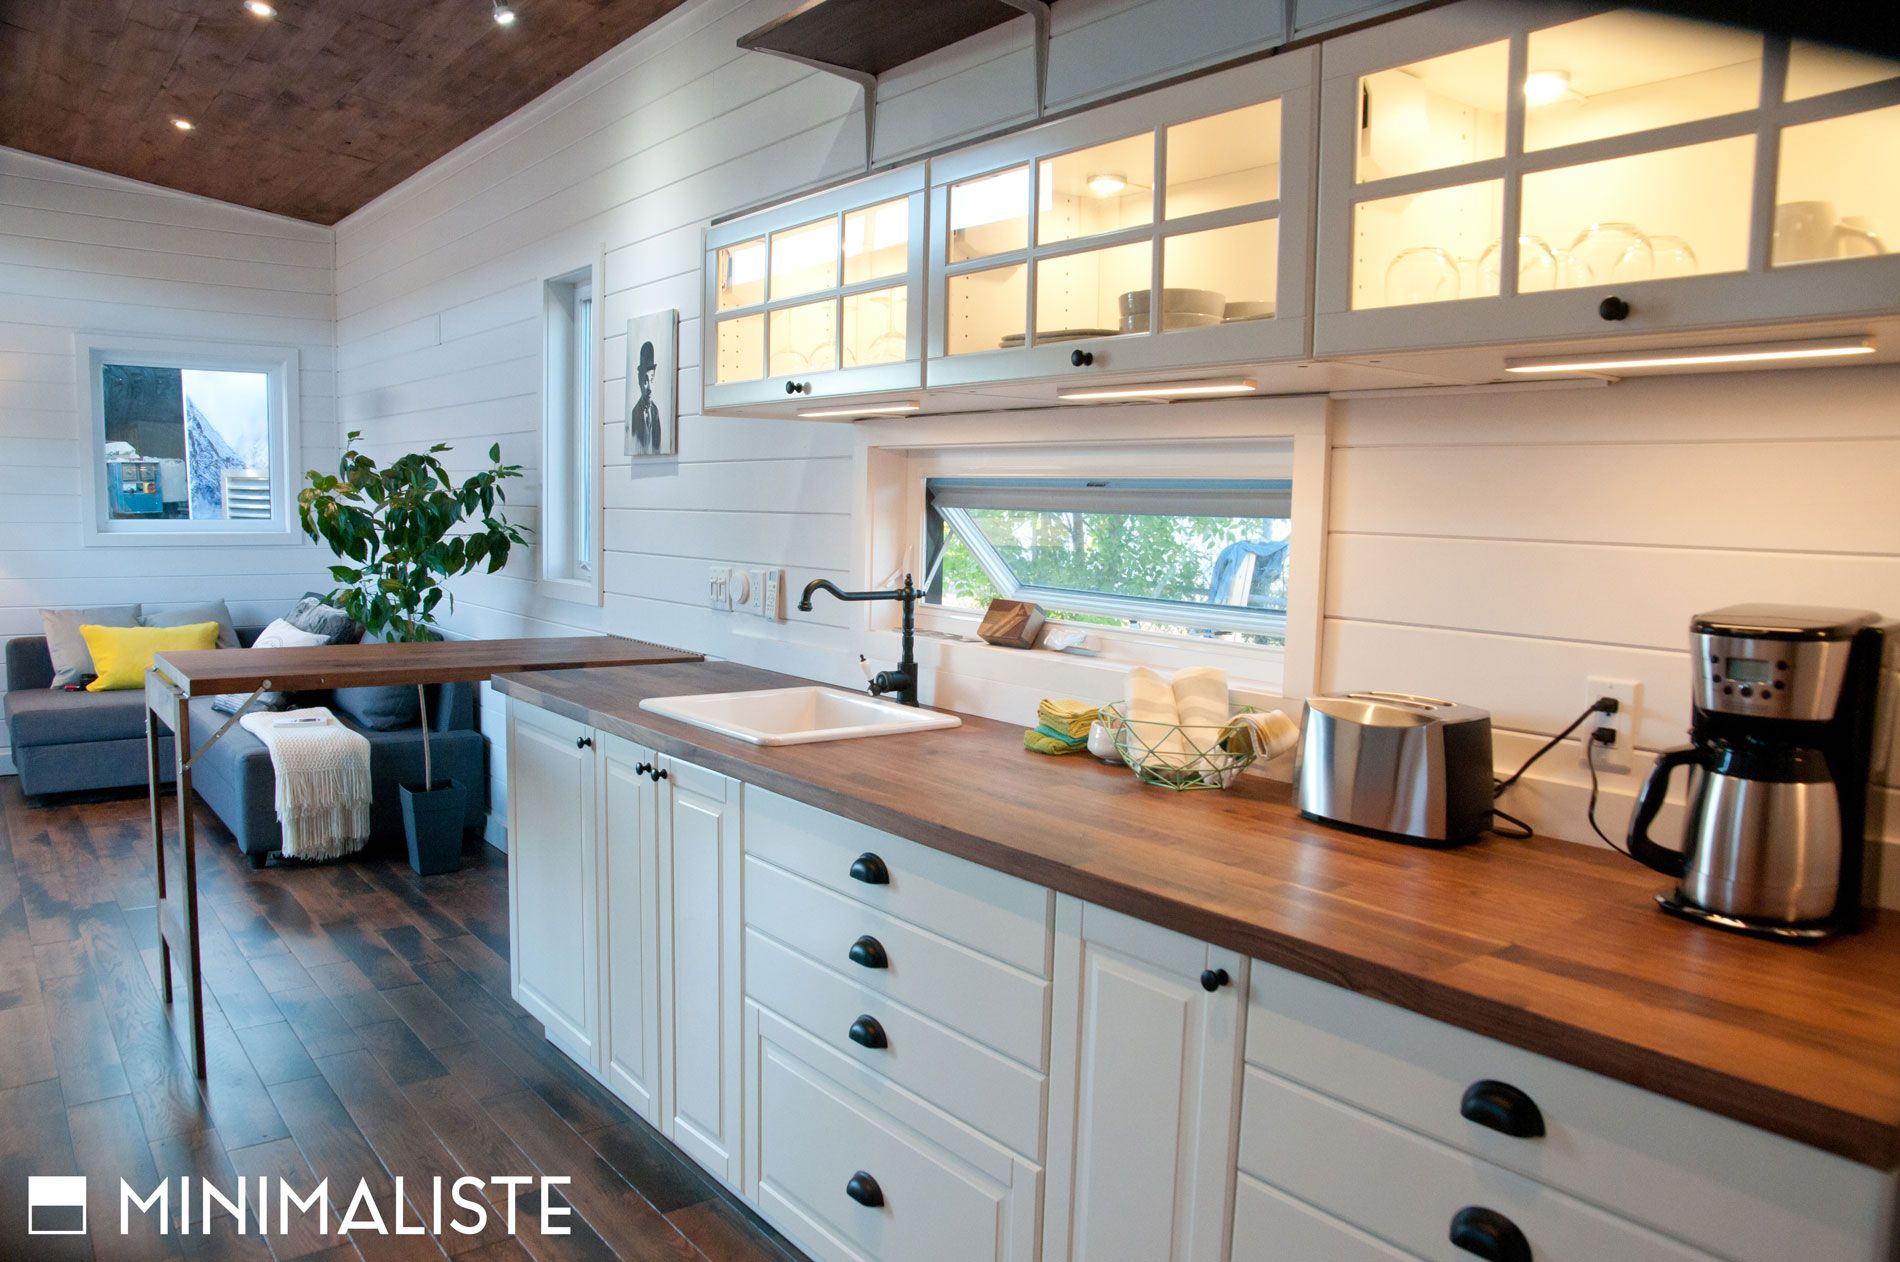 Urban Craftsman by Handcrafted Movement   Tiny houses, Loft spaces ...